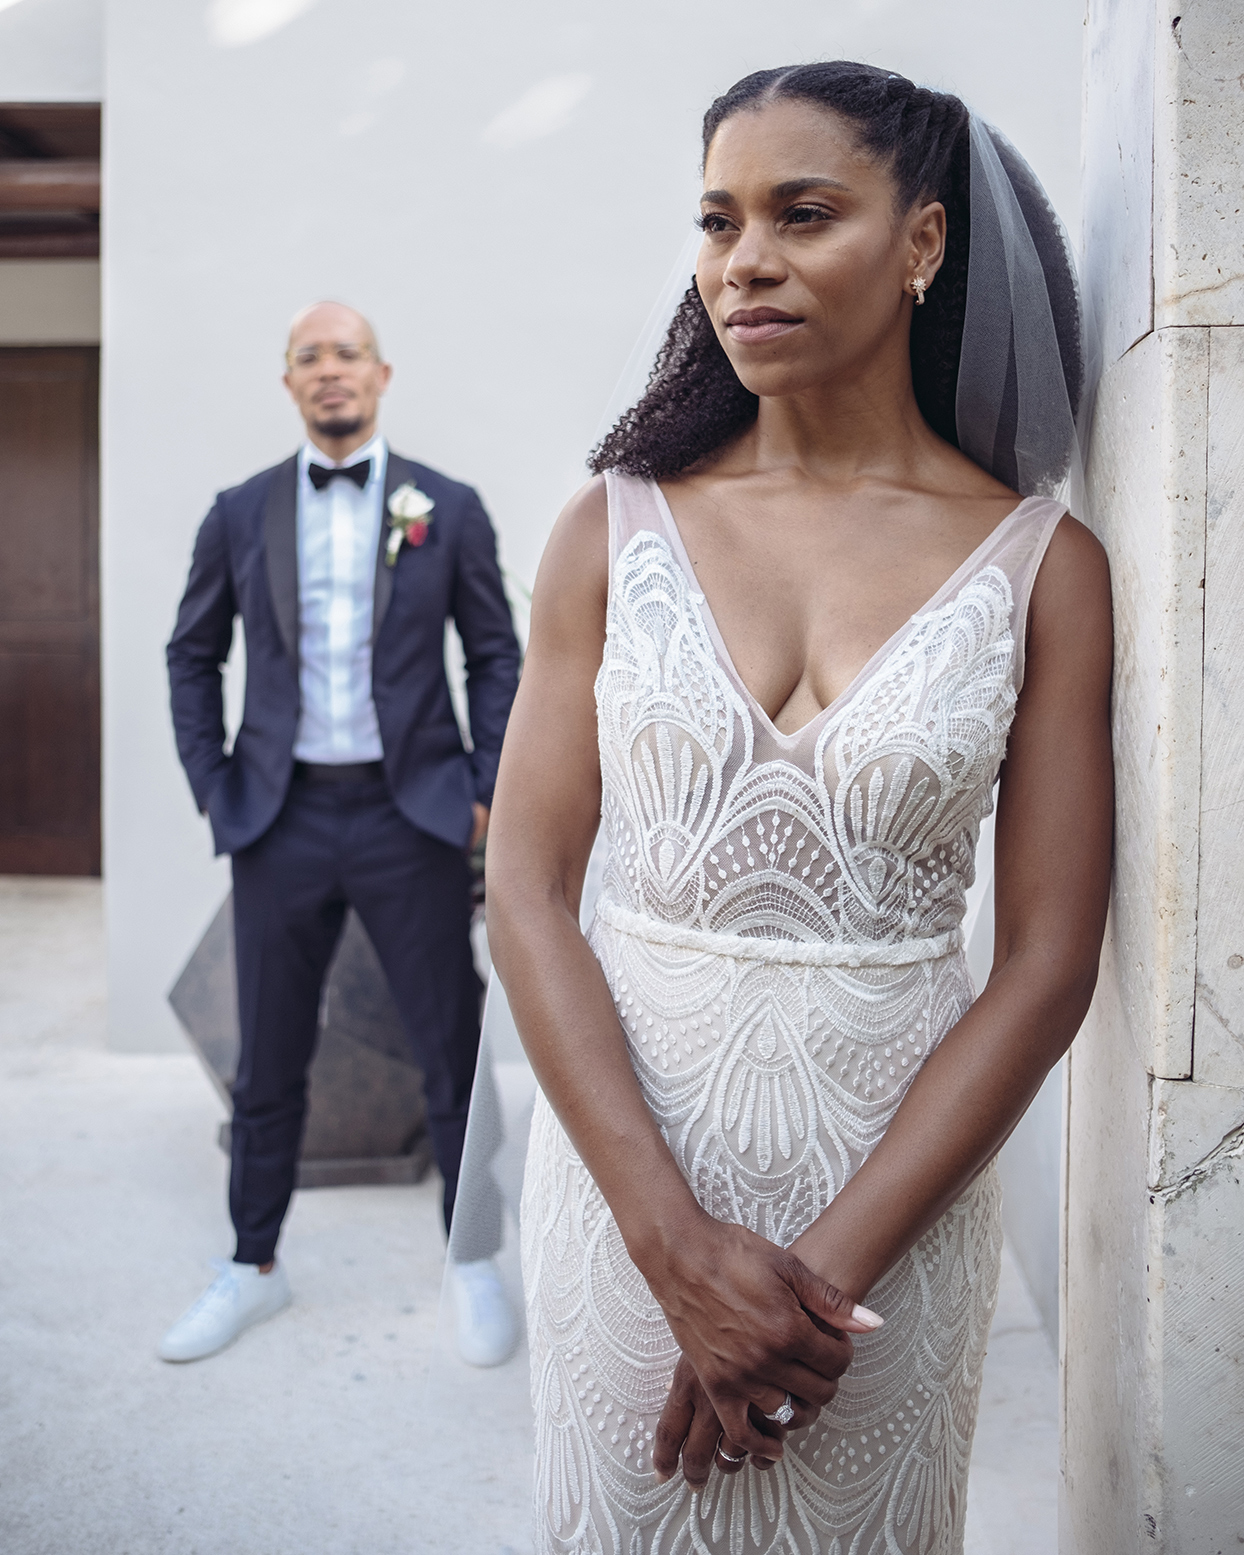 kelly mccreary standing in wedding dress in front of groom